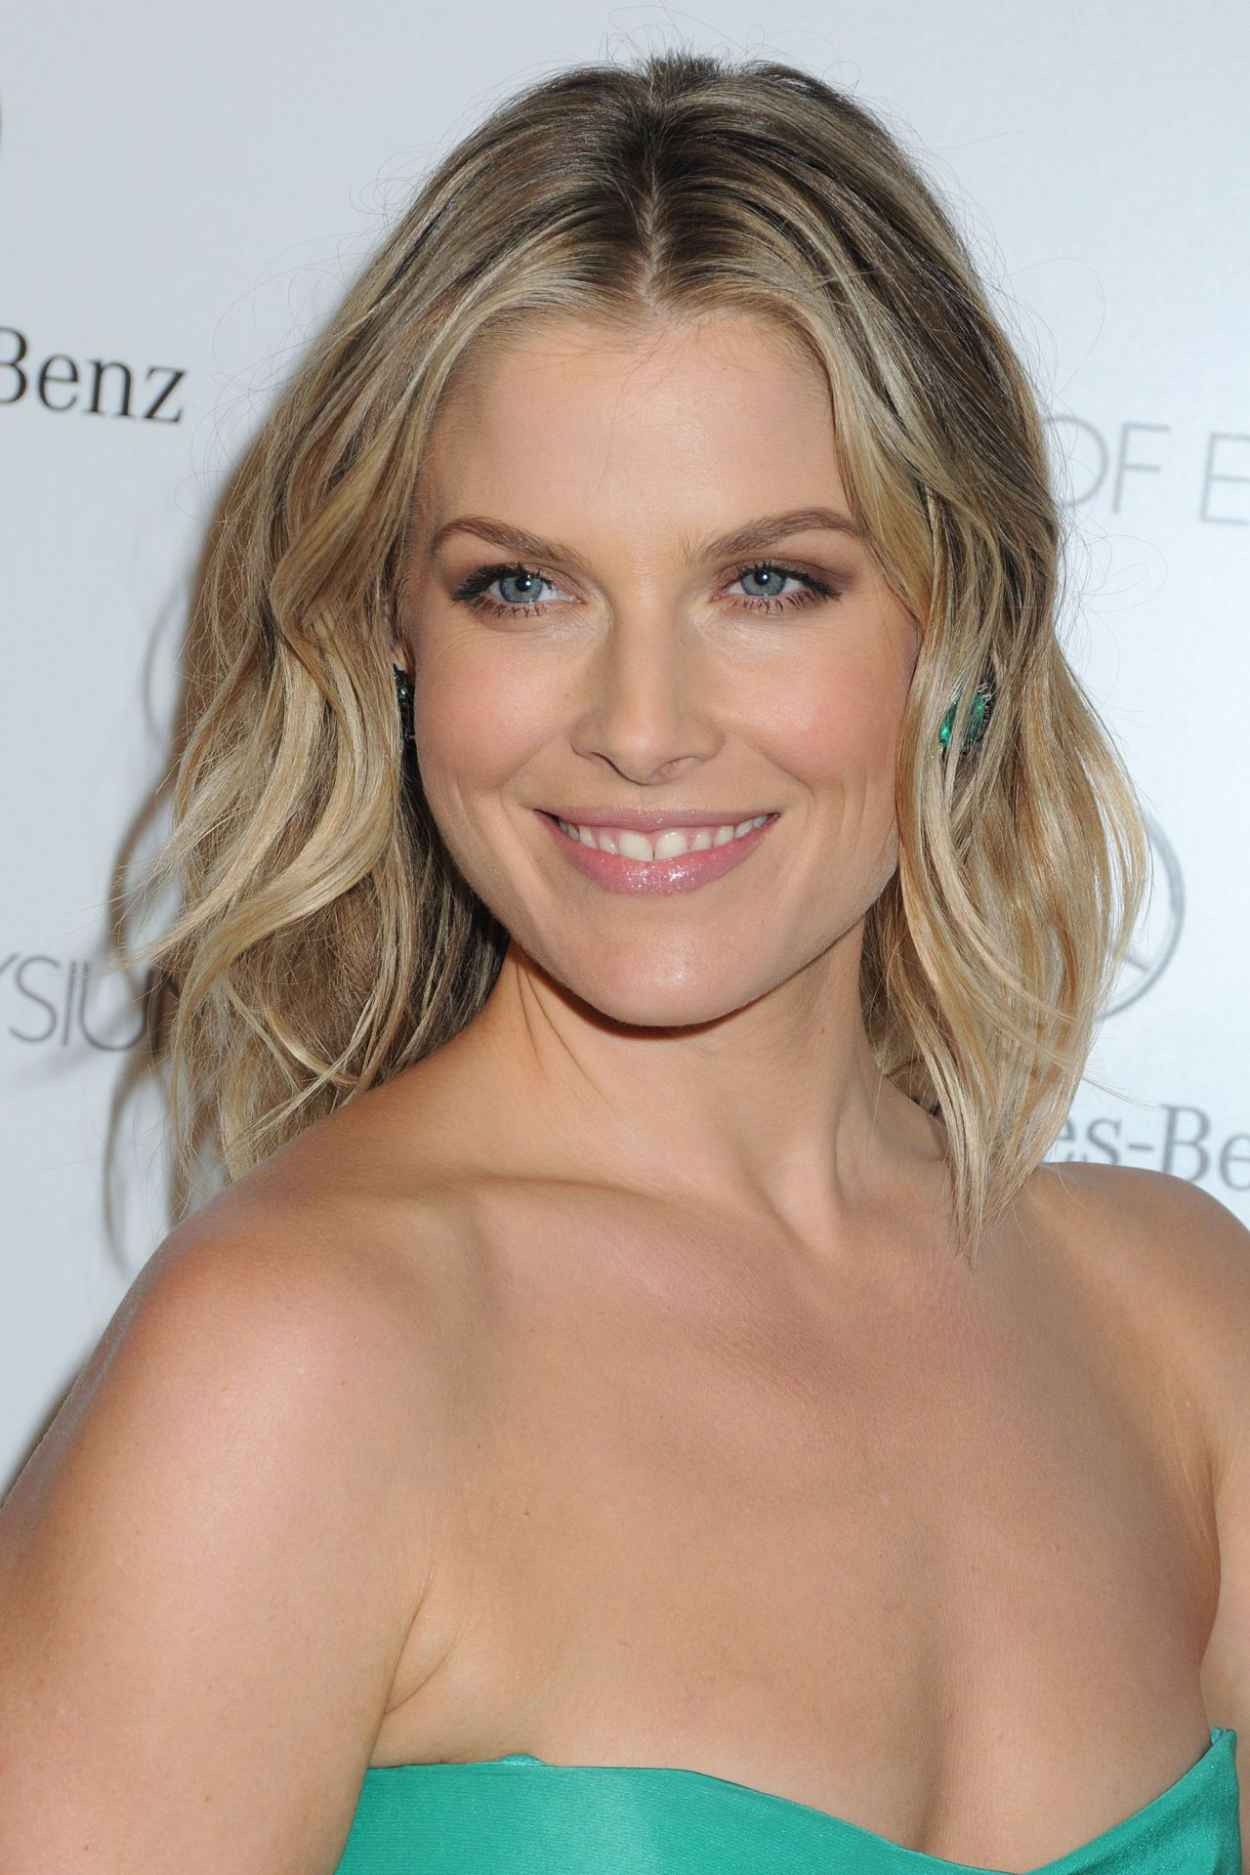 Ali Larter Wearing Monique Lhuillier at The Art of Elysium HEAVEN Gala in Los Angeles-1